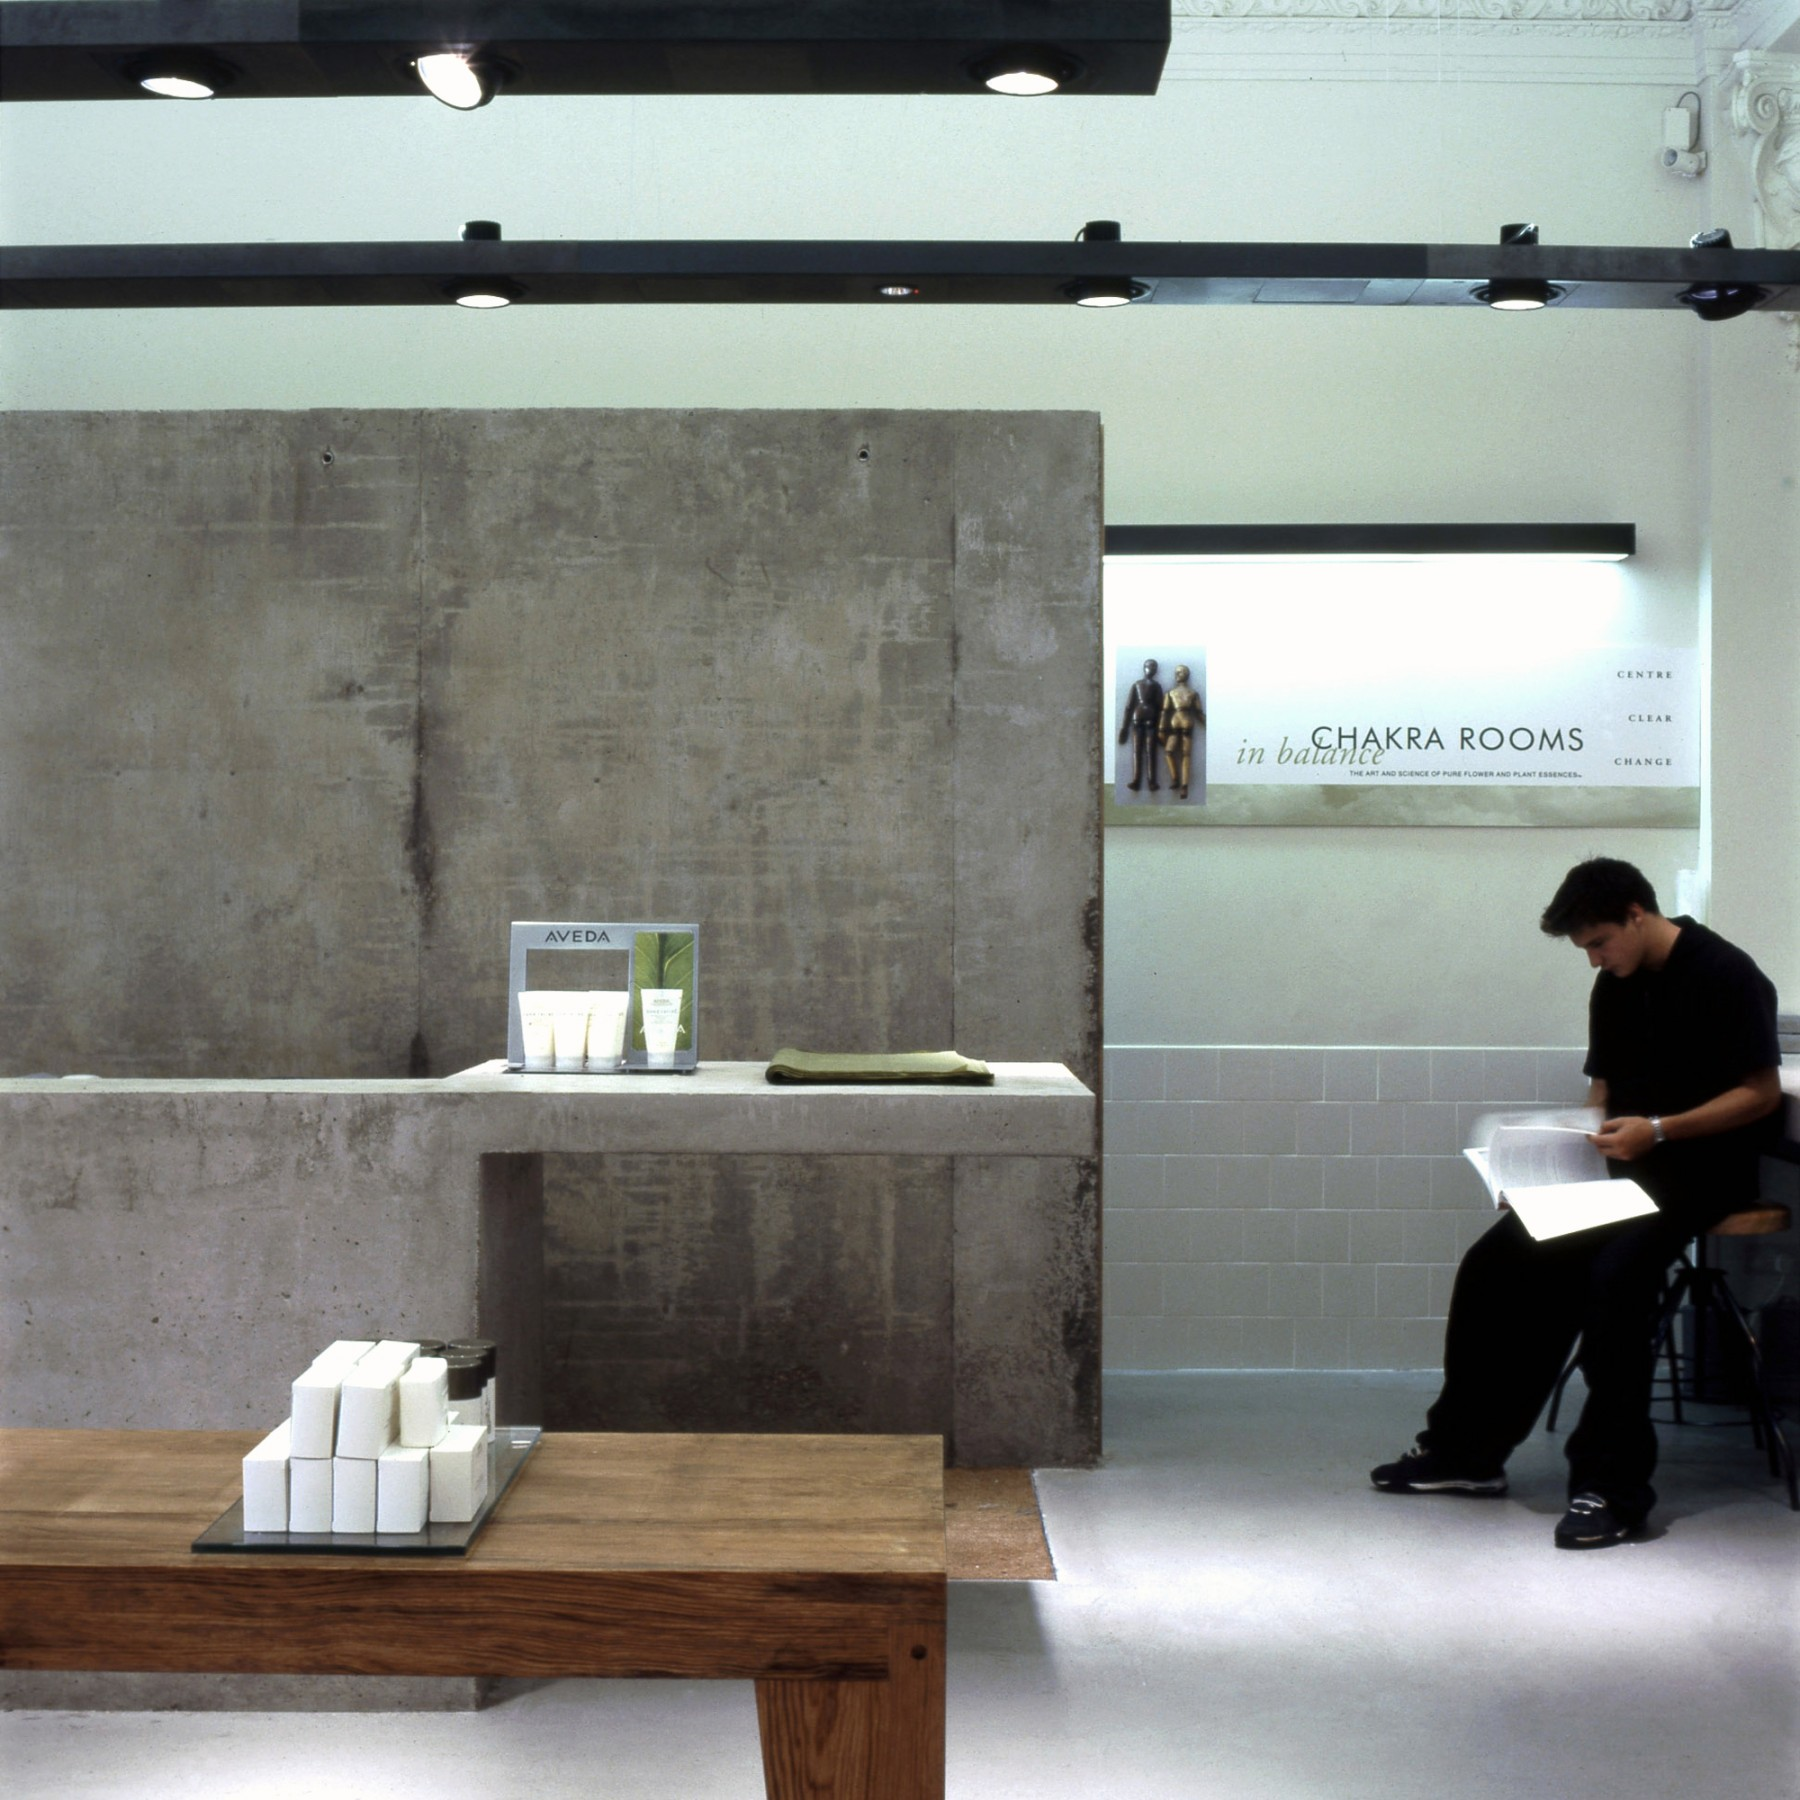 Aveda-London-New-York-Berlin-craft-organic-cosmetic-company-design-concept-Jamie-Fobert-Architects-2